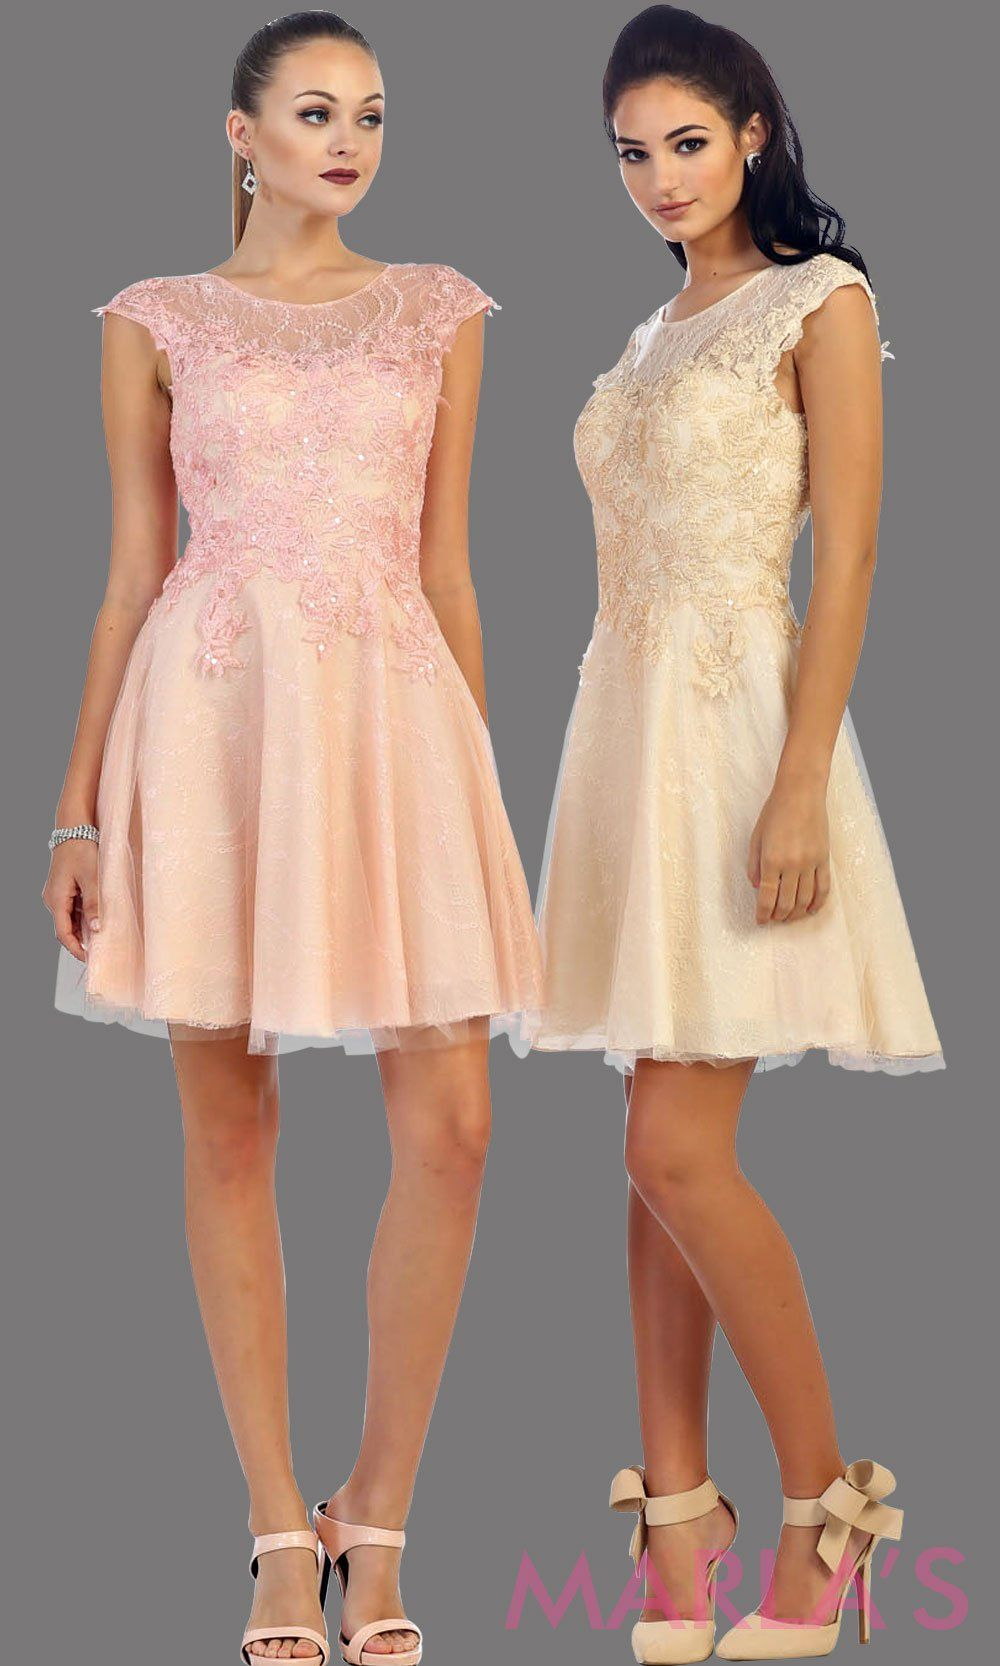 High neck short champagne puffy dress with lace bodice. This light beige short grade 8 graduation dress has a low v back. This is perfect for homecoming, semi formal, or party dress. Available in plus sizes